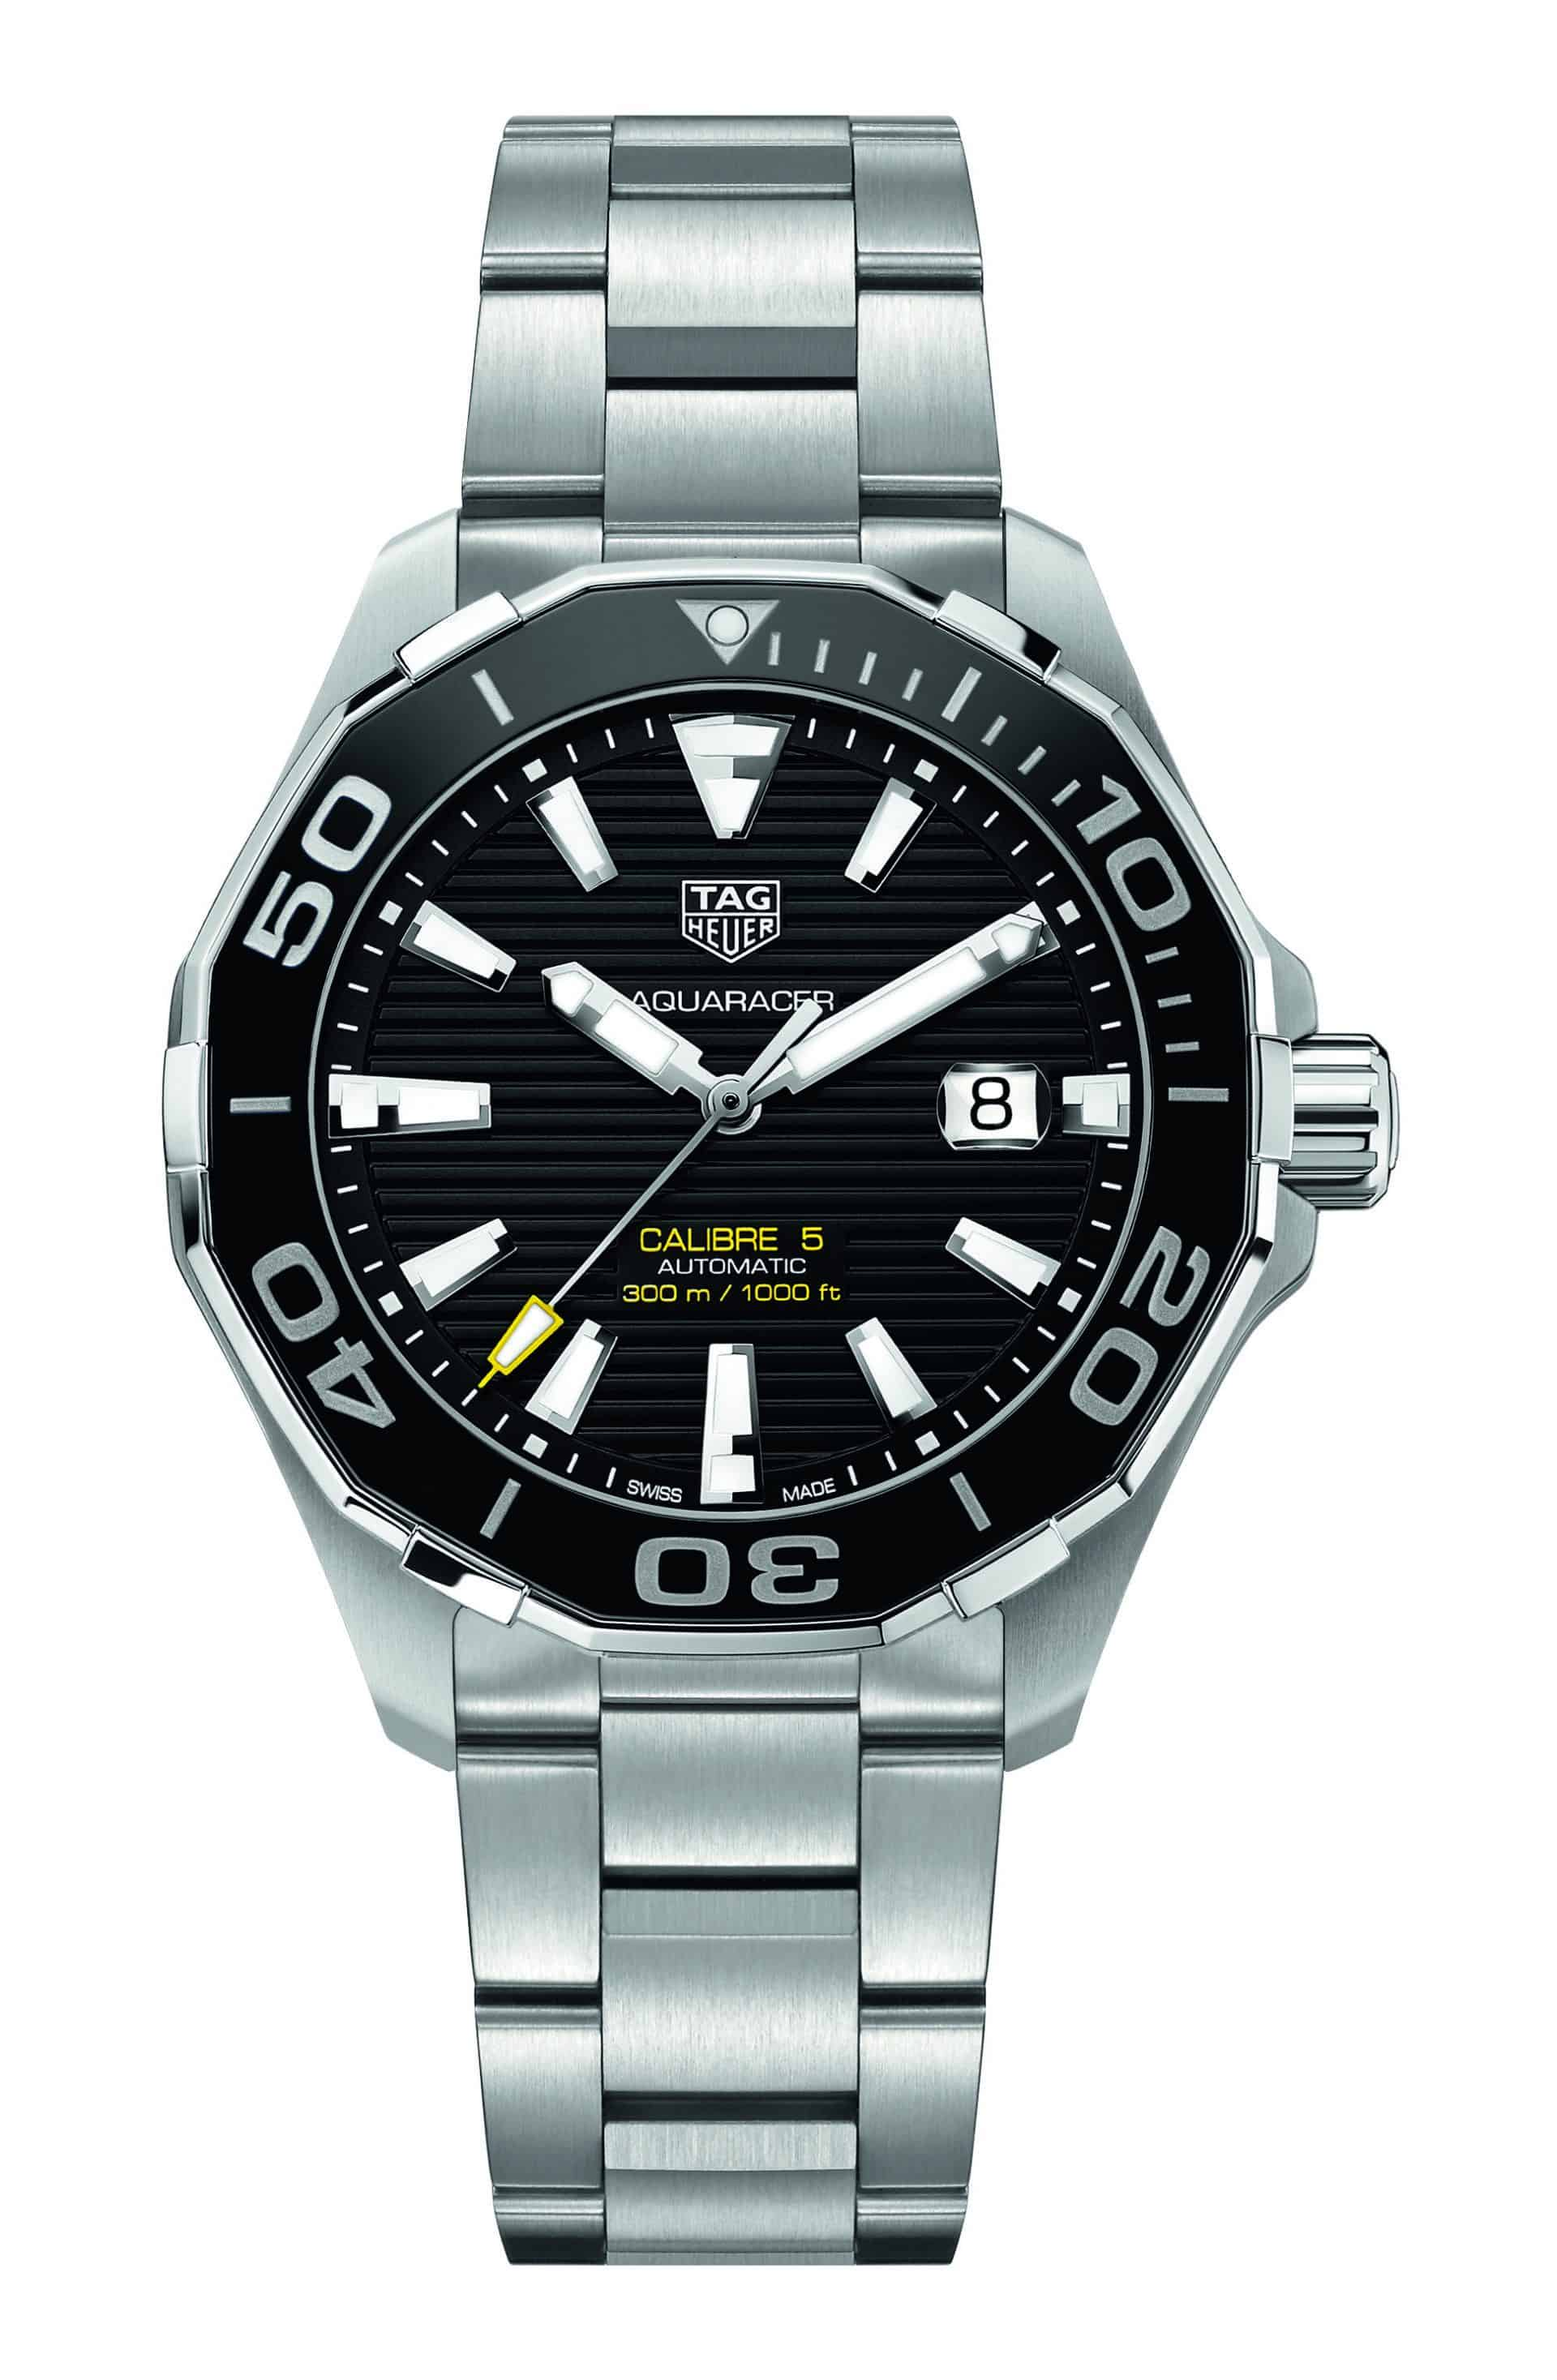 4. AQUARACER 300M MEN 2016_PHOTOS_WAY201A.BA0927 2016 HD